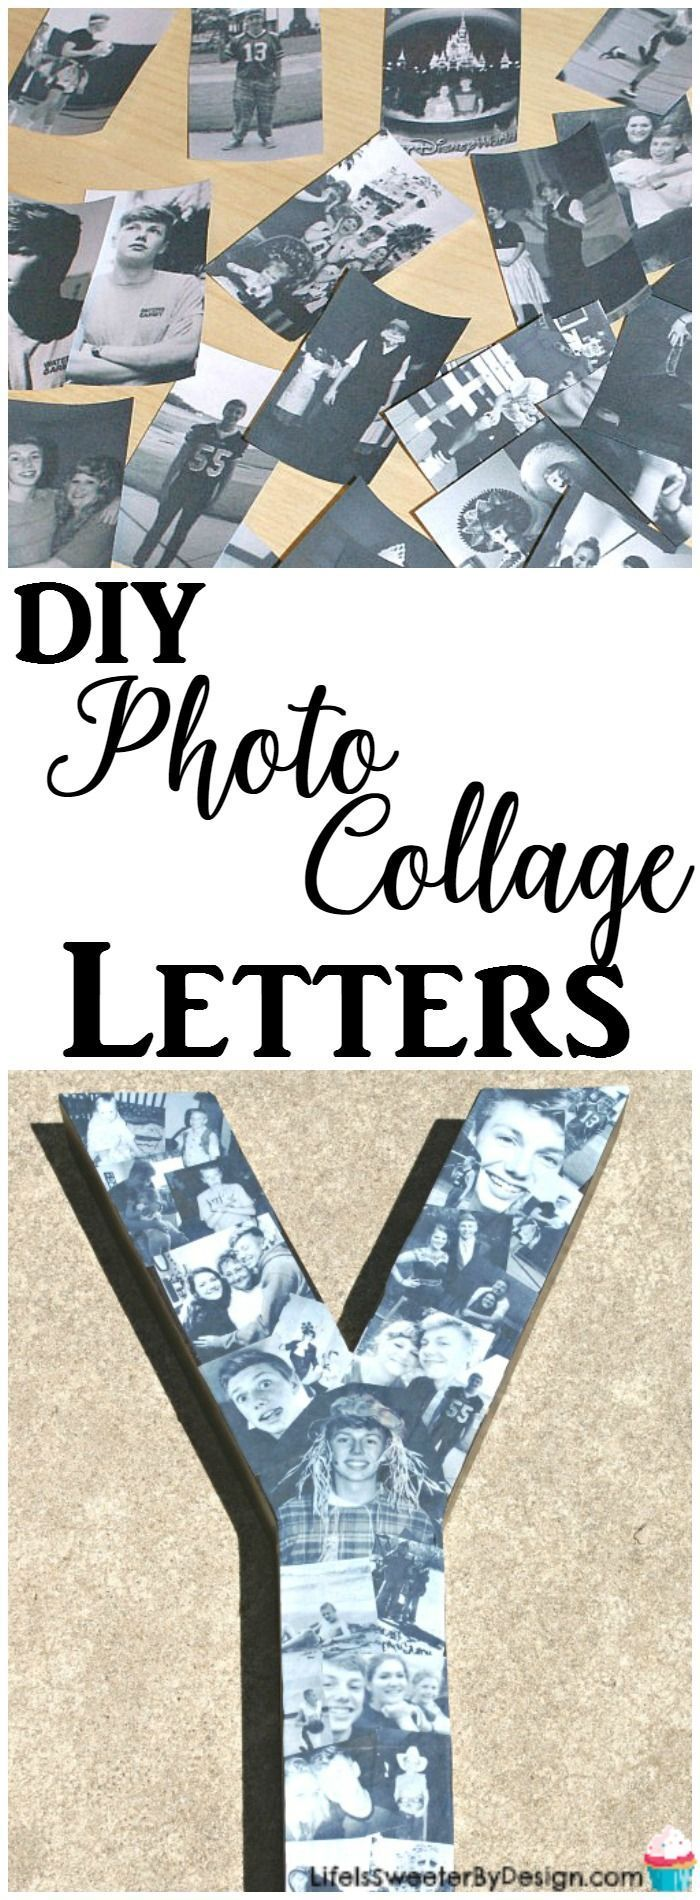 This DIY Paper Mache Photo Letters Collage is easy to make and is a great personalized gift idea! Check out my easy to follow personalized photo letter tutorial that makes a great graduation or wedding gift!